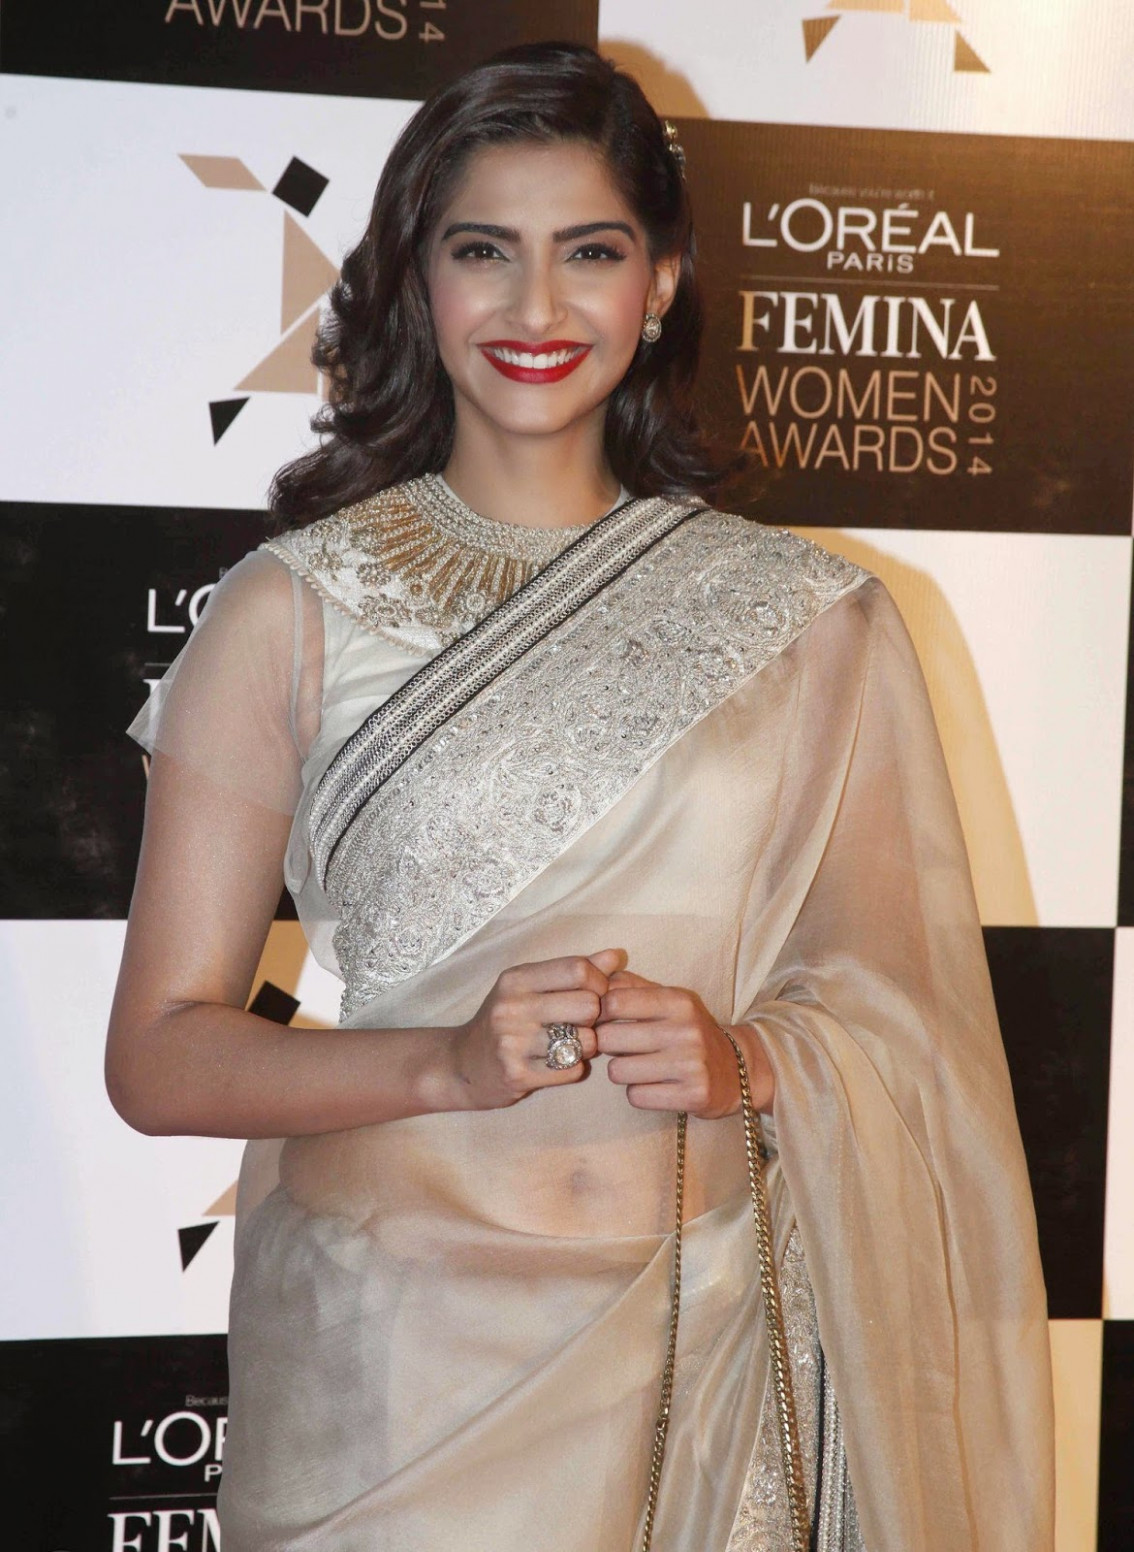 High Quality Bollywood Celebrity Pictures: Sonam Kapoor